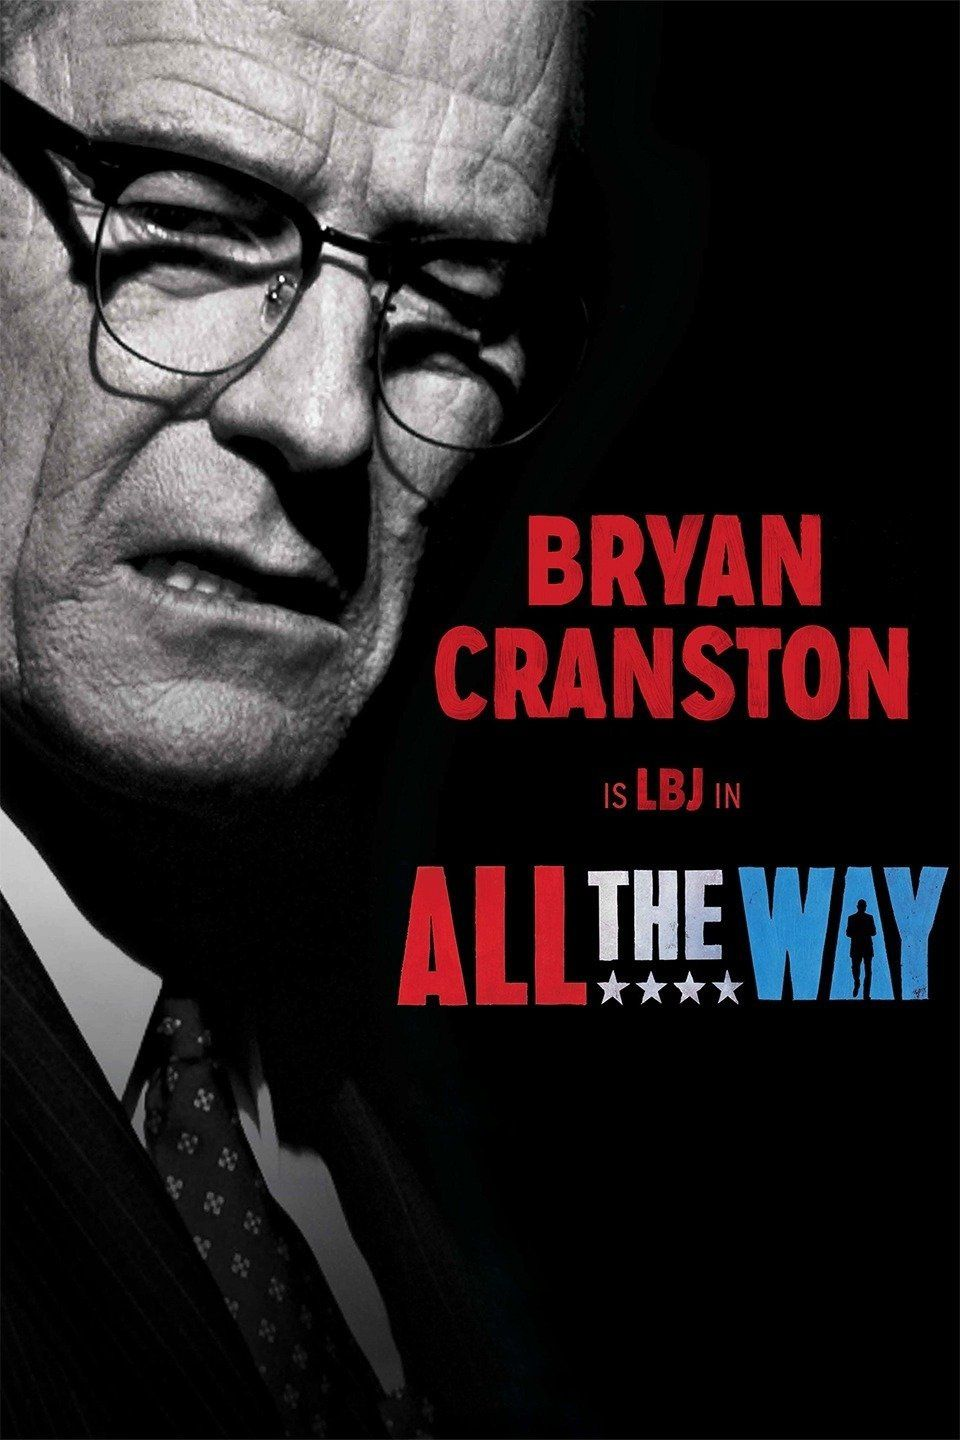 Le téléfilm inédit HBO &quot&#x3B;All The Way&quot&#x3B;, avec Bryan Cranston, le 6 septembre sur OCS City.